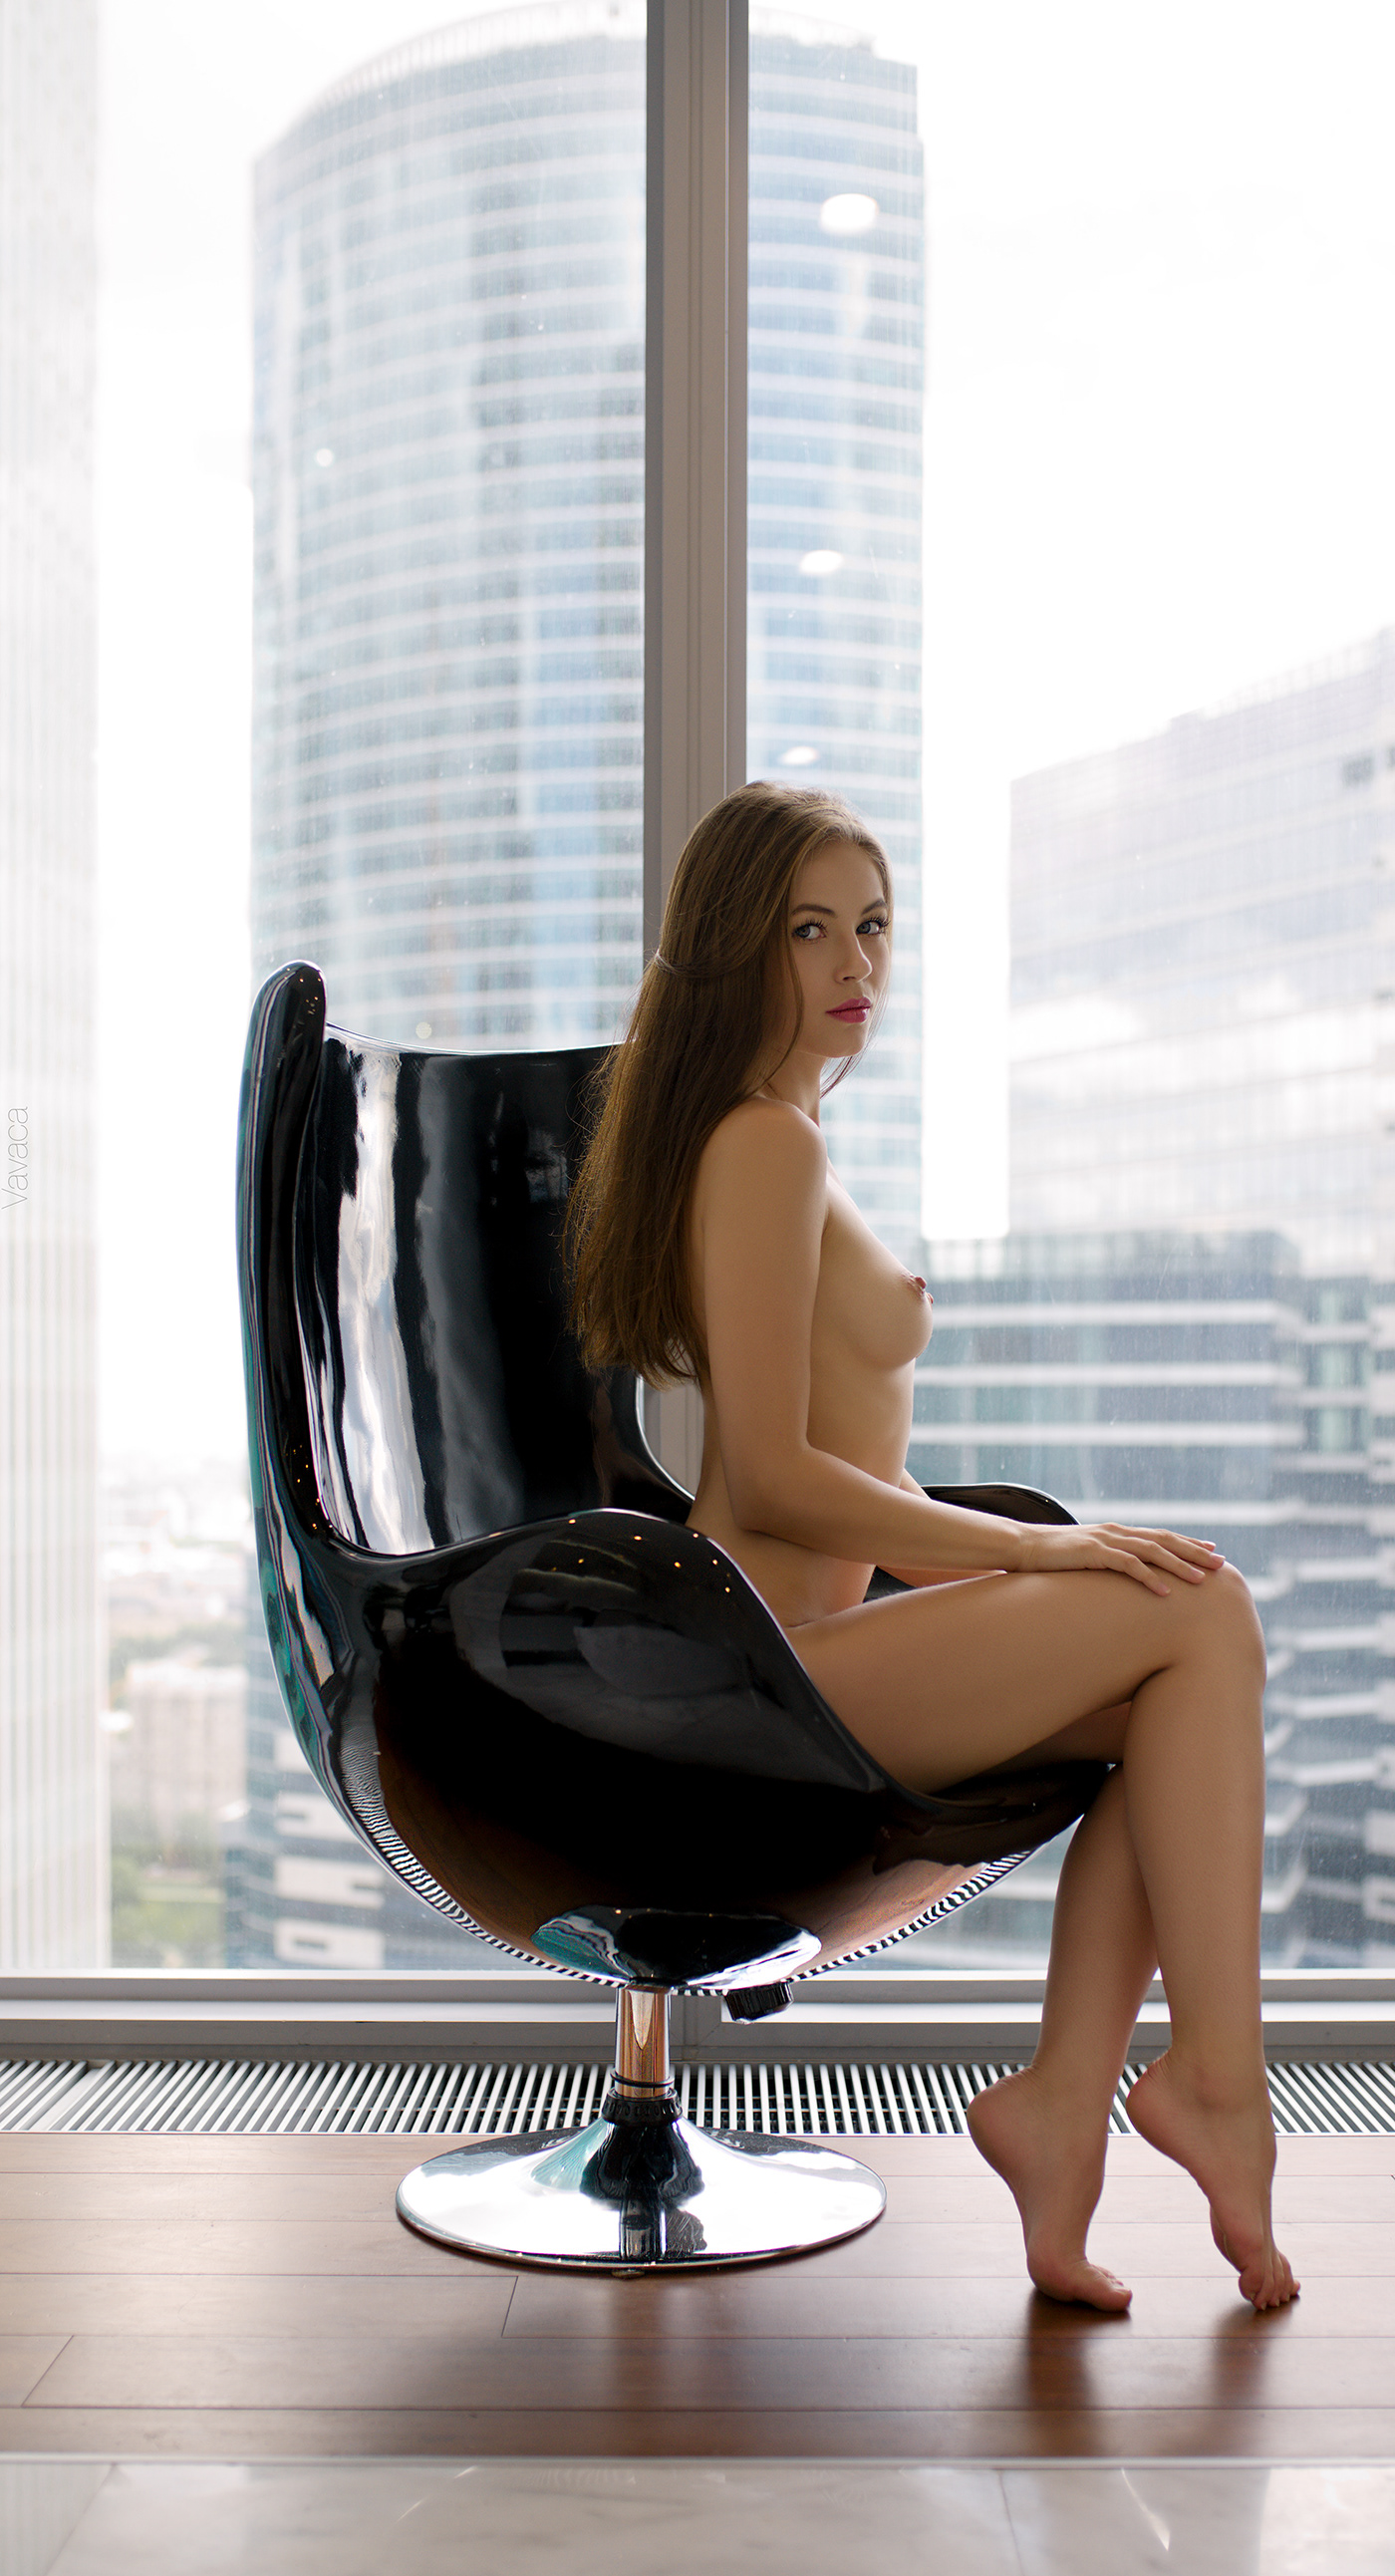 Black Chair * Model Viktoriia Aliko / фотограф Vladimir Nikolaev